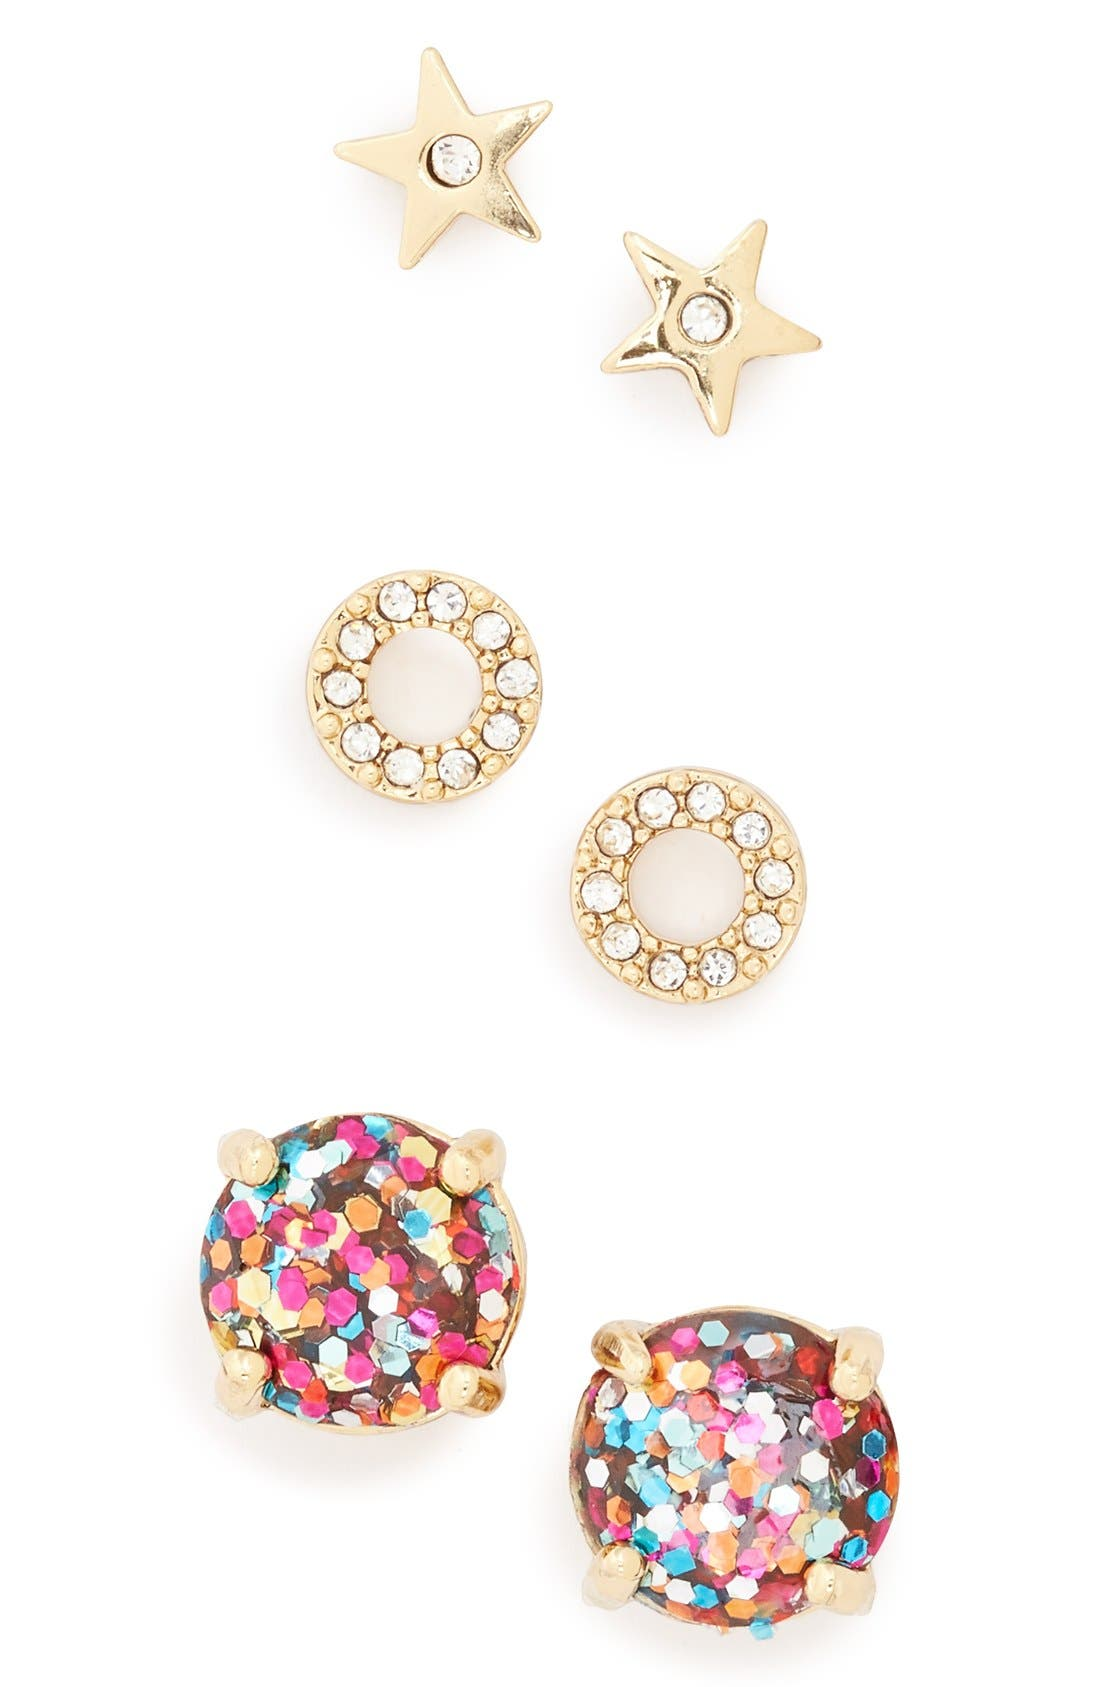 Main Image - kate spade new york star & round stud earrings (Set of 3)